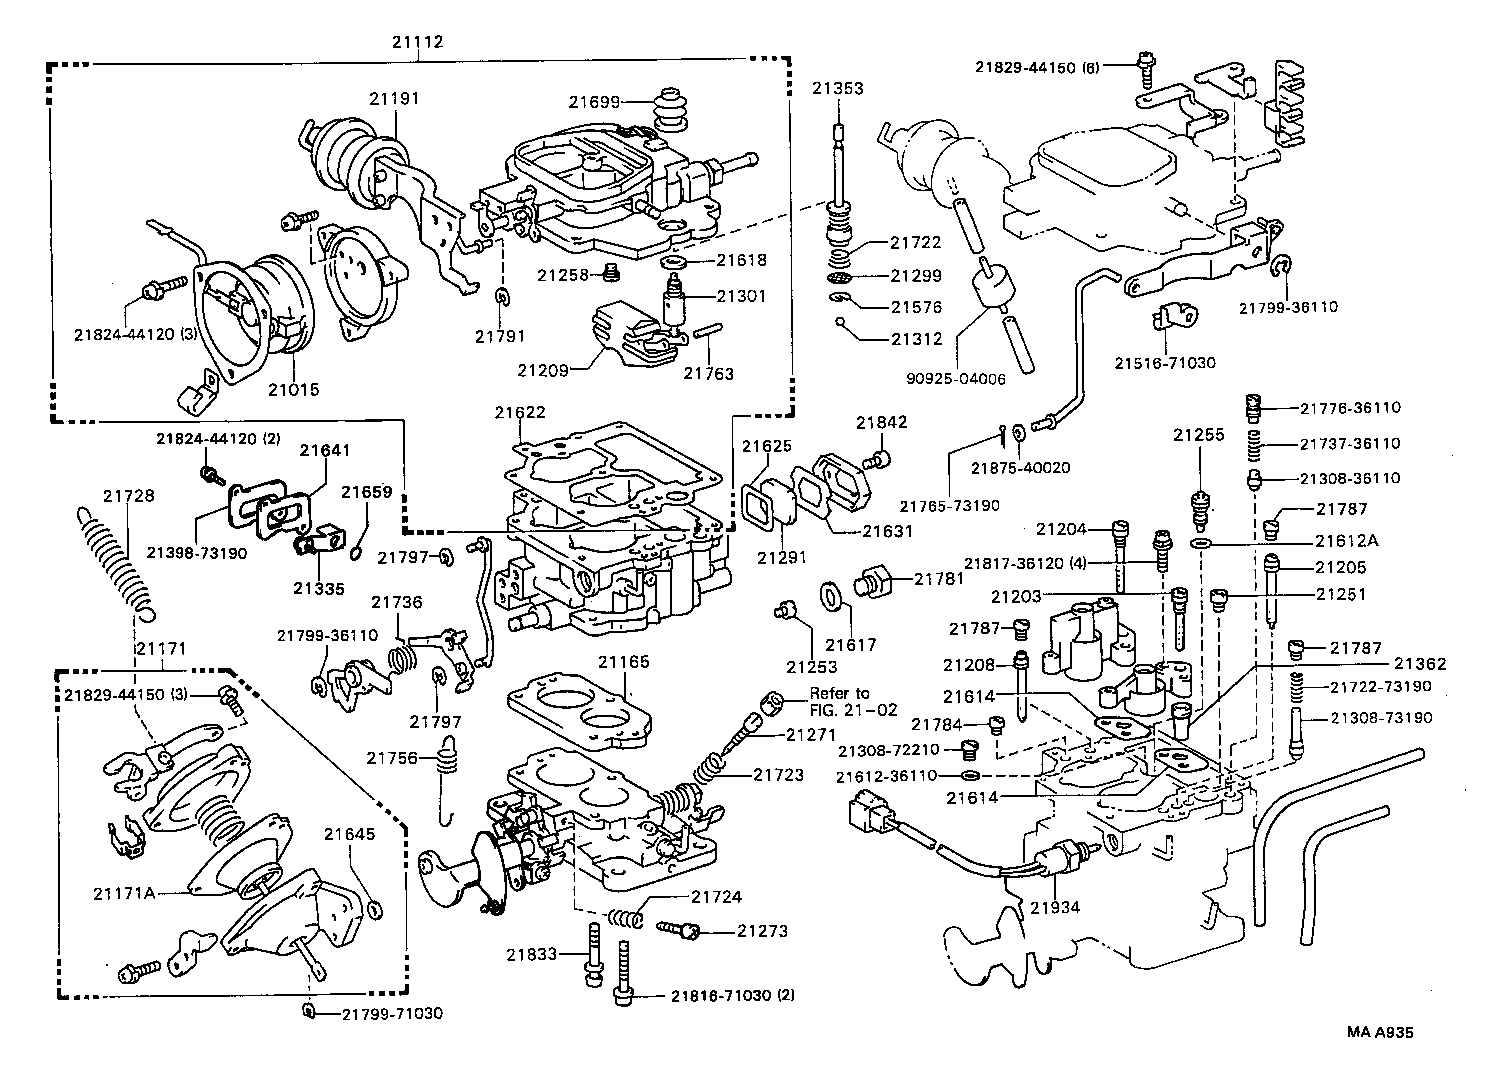 Toyota Mark2 1996 Jzx90 Wiring Diagram